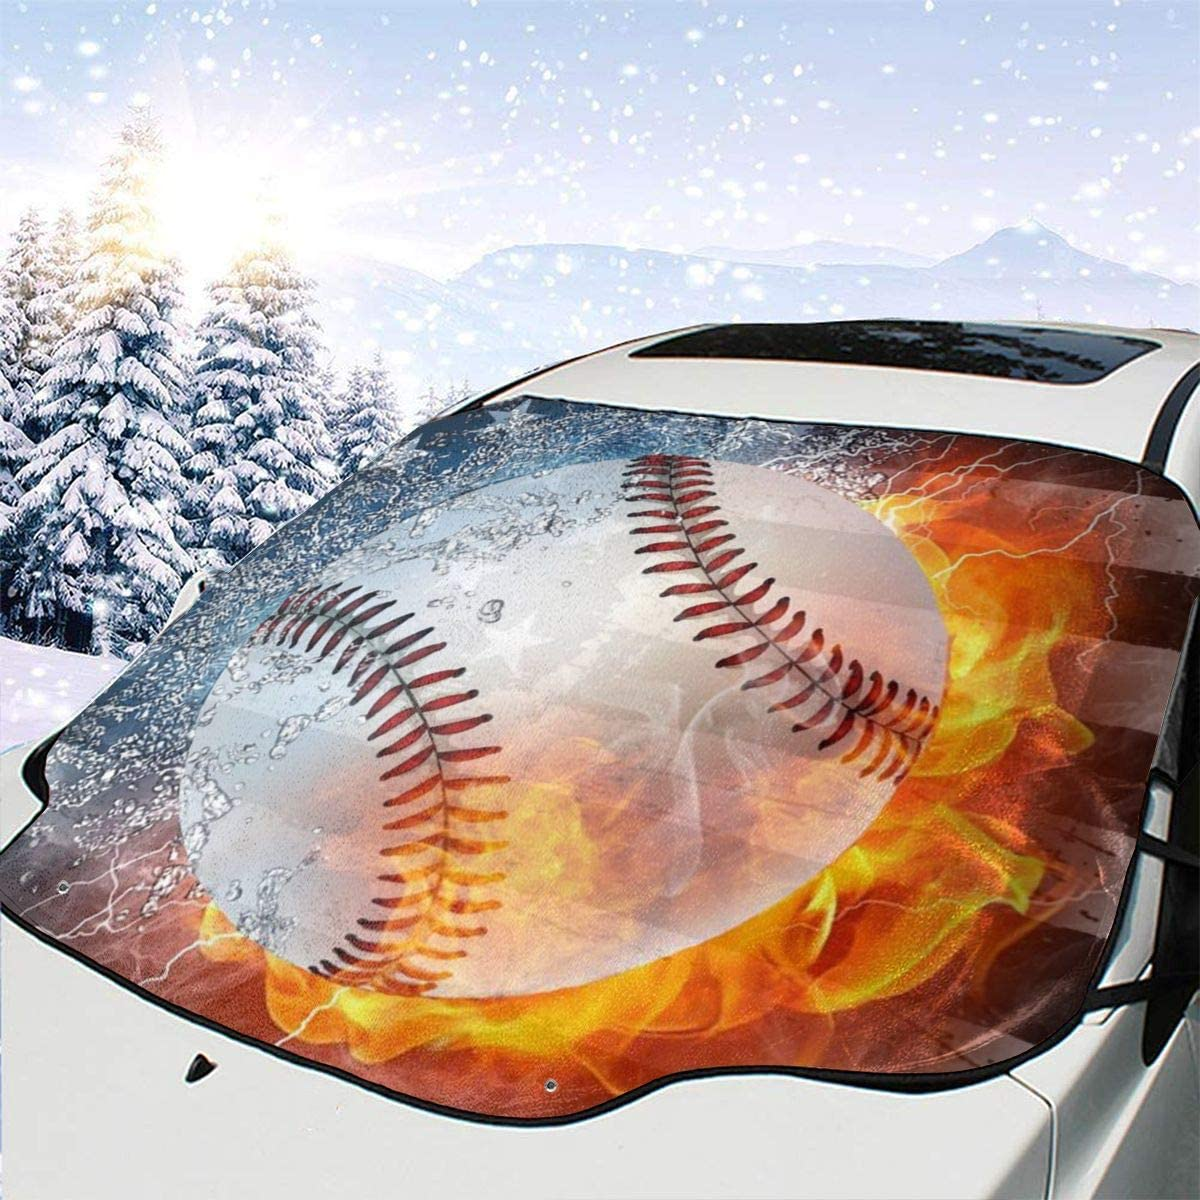 THONFIRE Car Front Window Windshield Snow Sun Shades American Fire Baseball Cover Rainproof Blocks Heat Keeps Your Vehicle Cool Visor Protector Trucks Autumn Heatshield